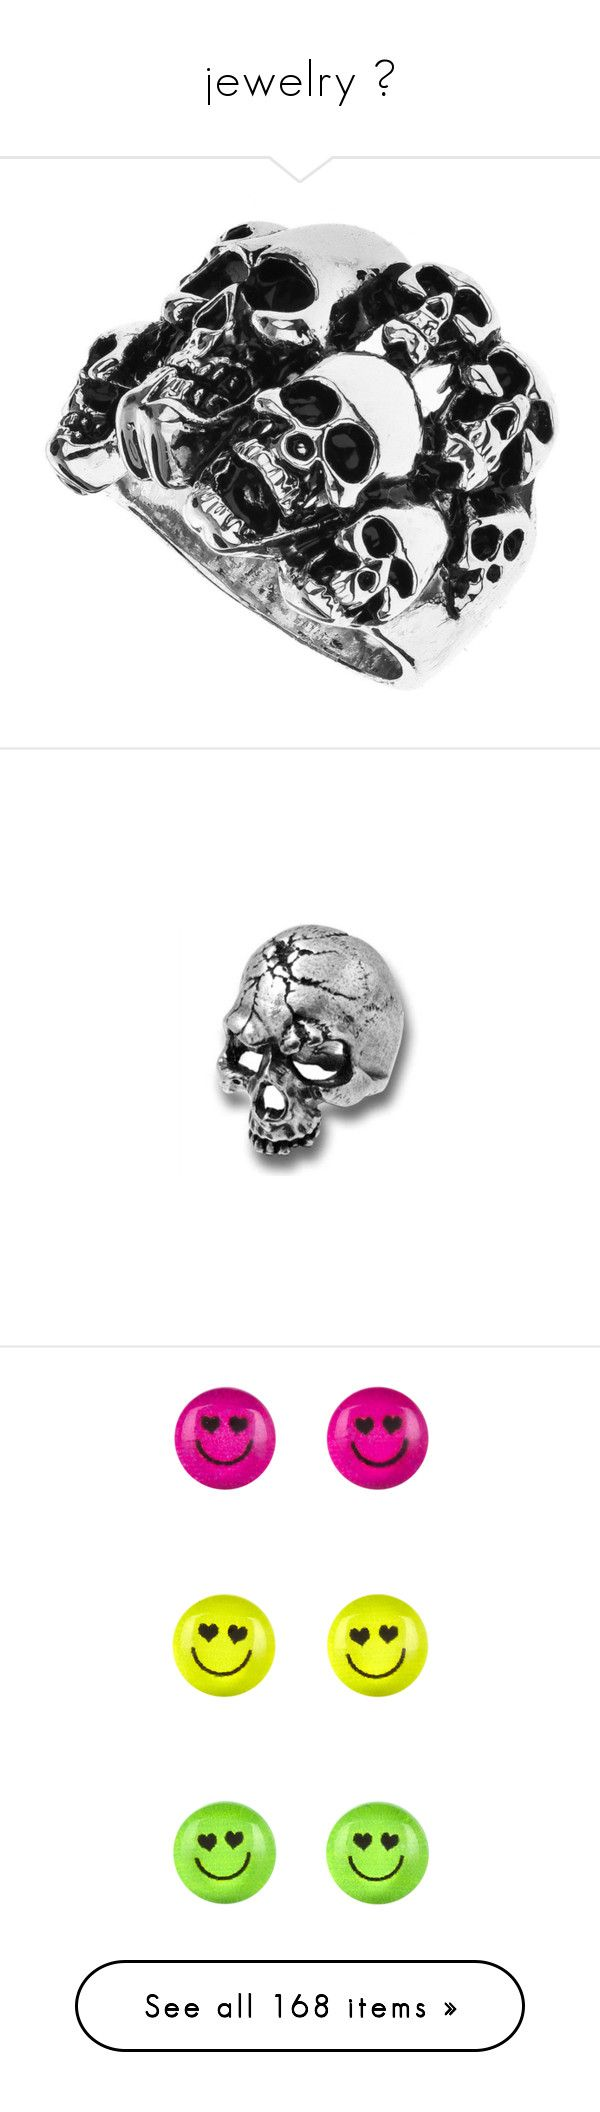 """""""jewelry 💍"""" by pinknlazy ❤ liked on Polyvore featuring jewelry, rings, accessories, women, skull jewelry, skull jewellery, skull rings, skull head ring, skull ring and earrings"""